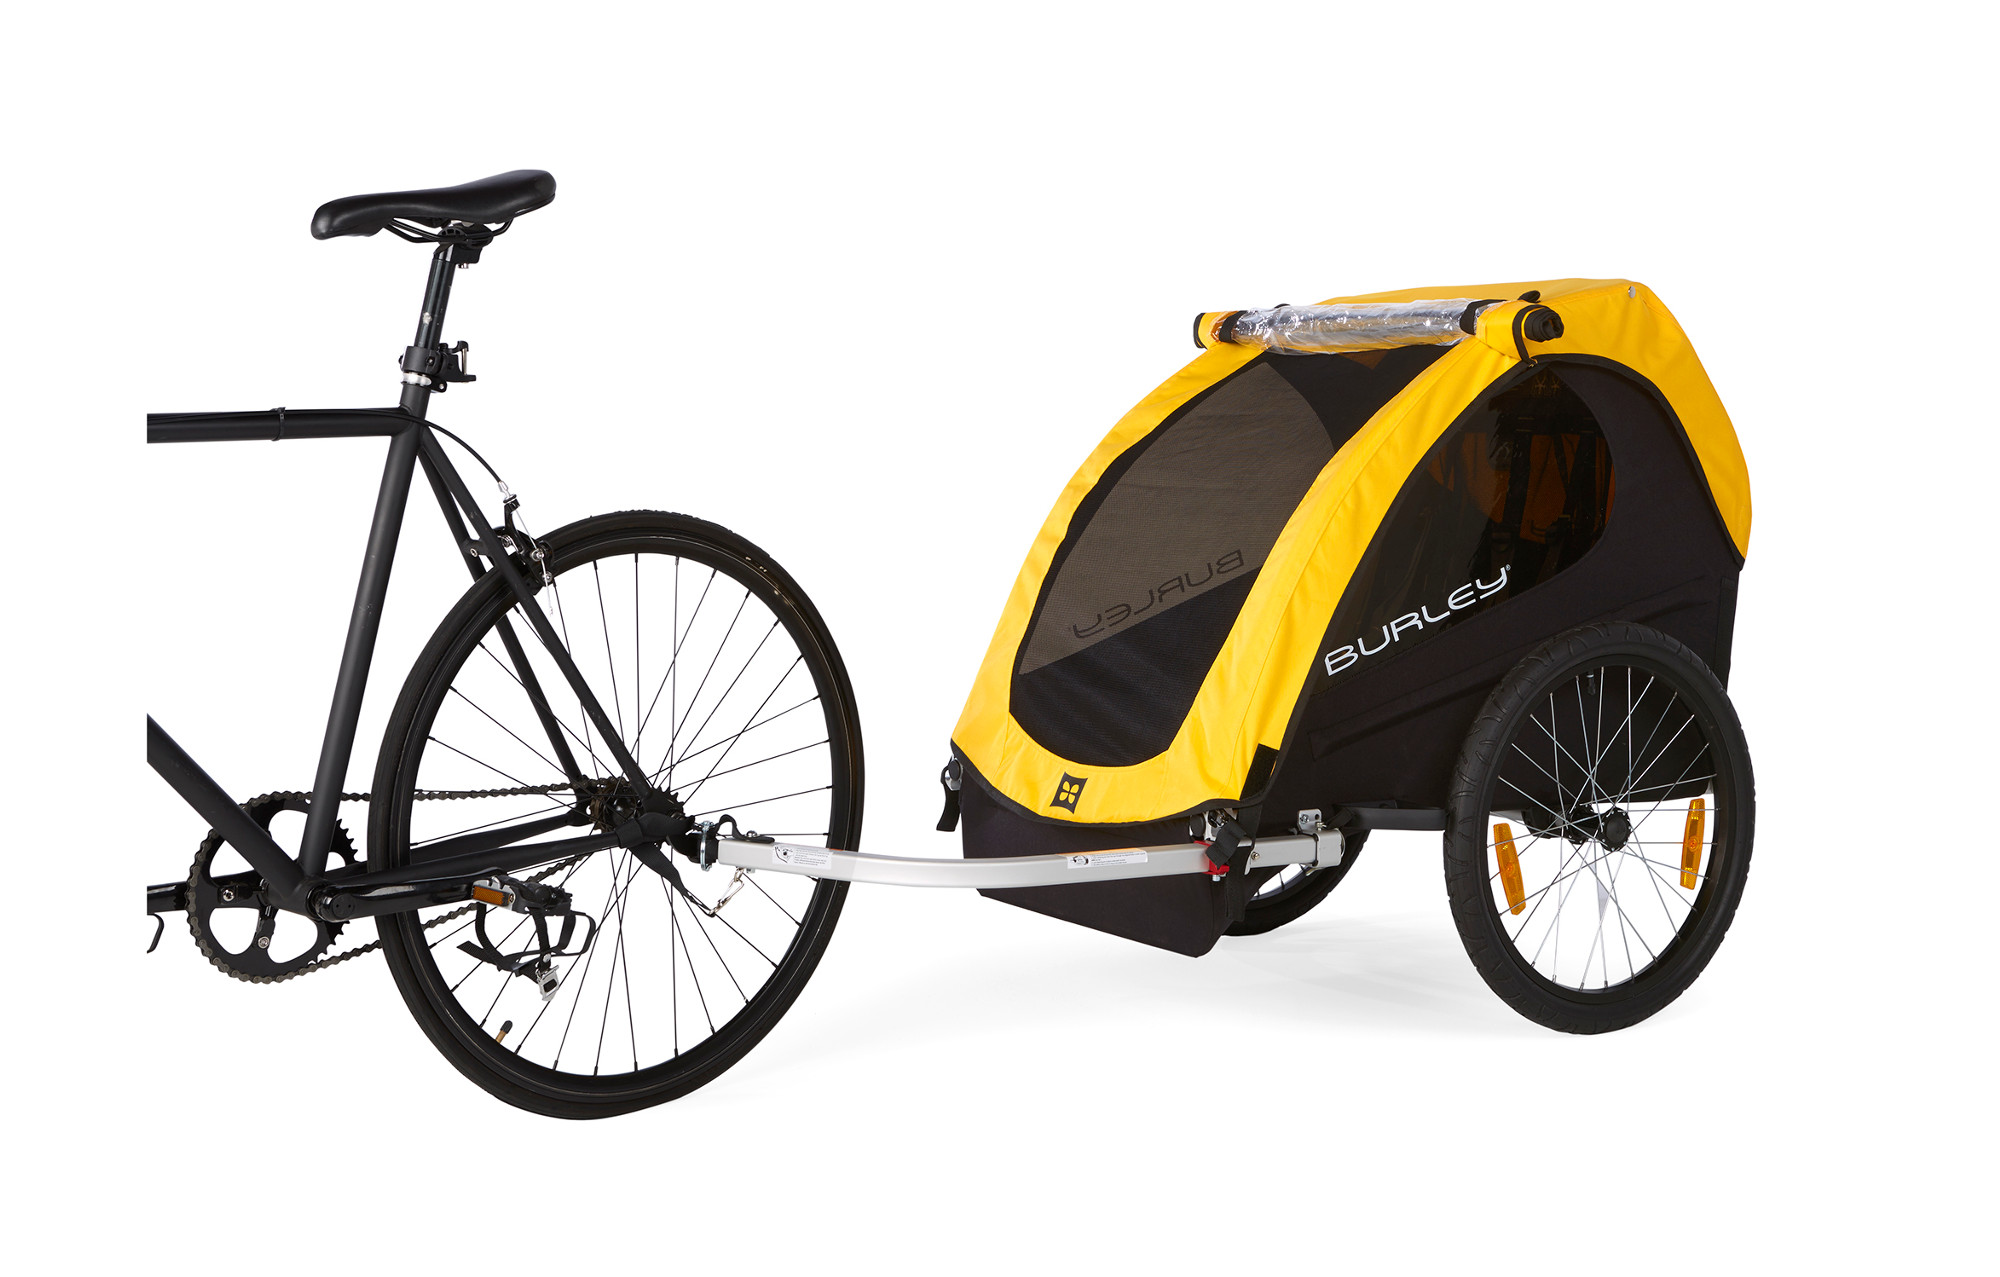 Tinted Black And Yellow Bikes For Kids